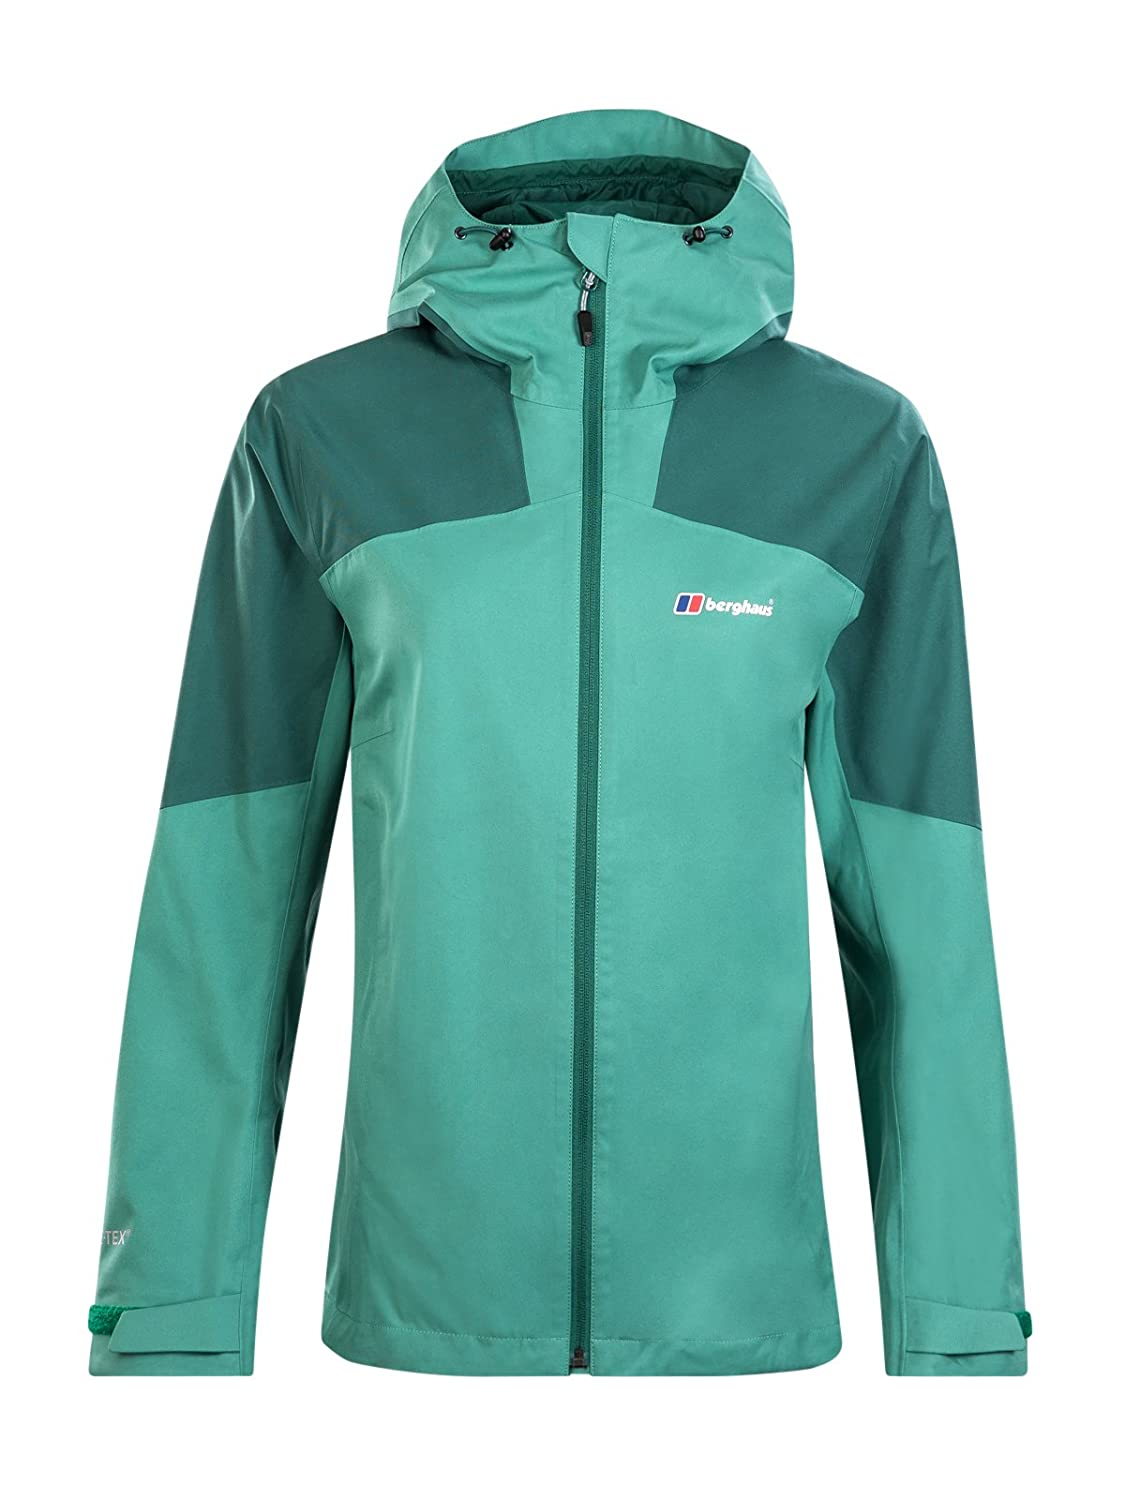 berghaus Fellmaster Chaqueta Impermeable, Mujer: Amazon.es: Deportes y aire libre